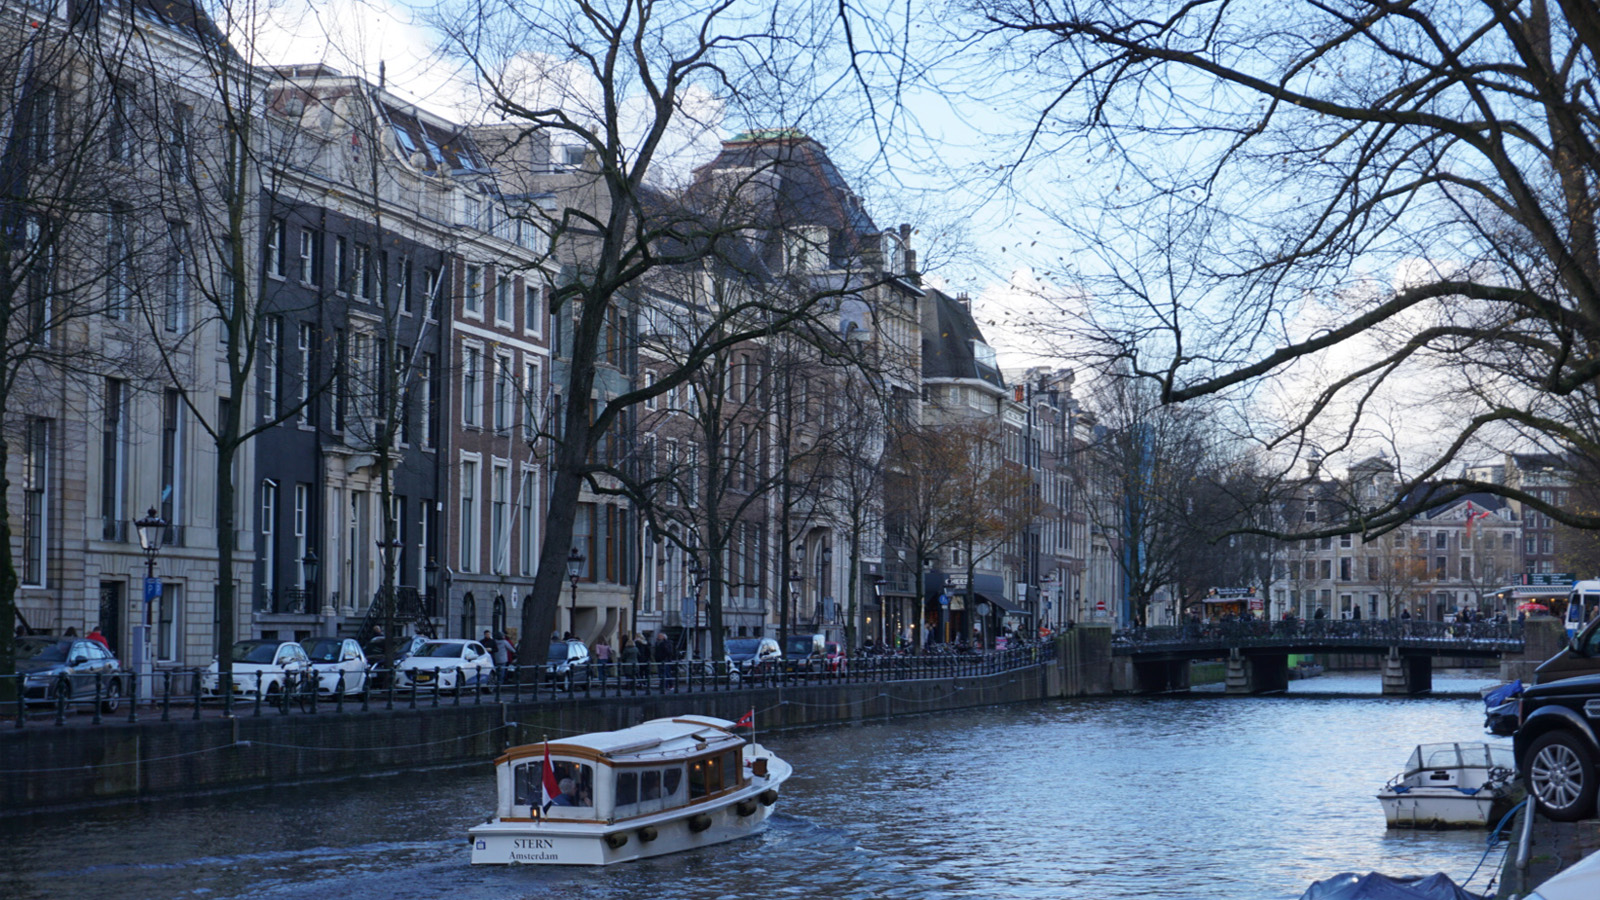 golden-bend-herengracht-gouden-bocht-amsterdam-holland-miniaturist